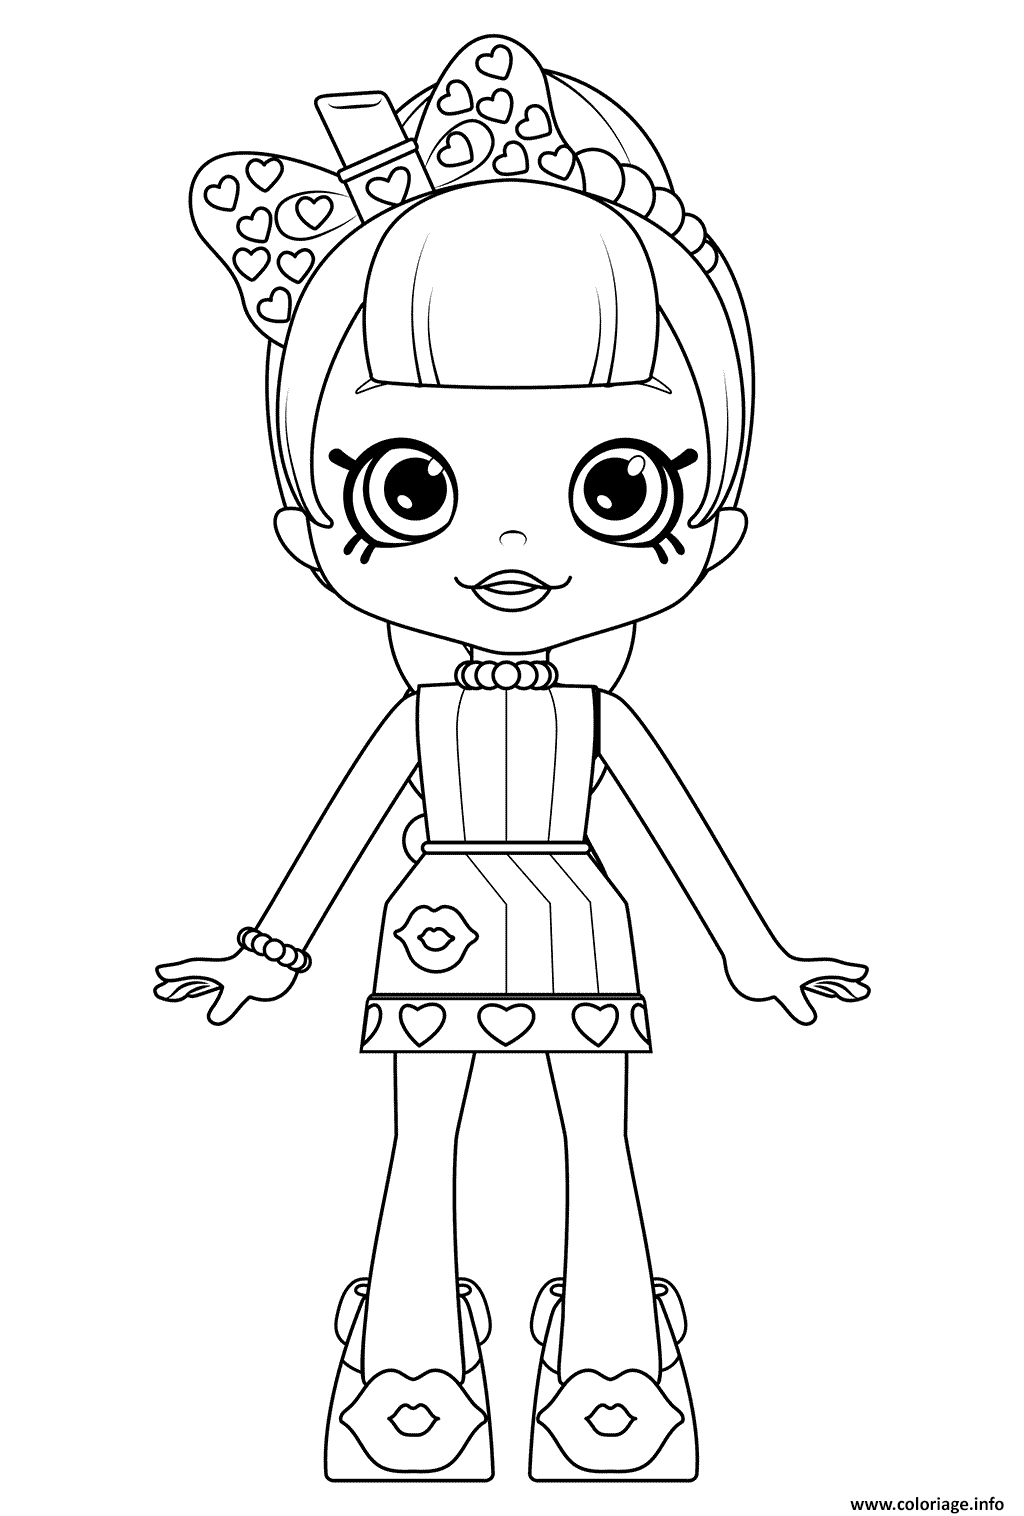 Coloriage Cute Shoppies Doll Lippy Lulu Coloring dessin